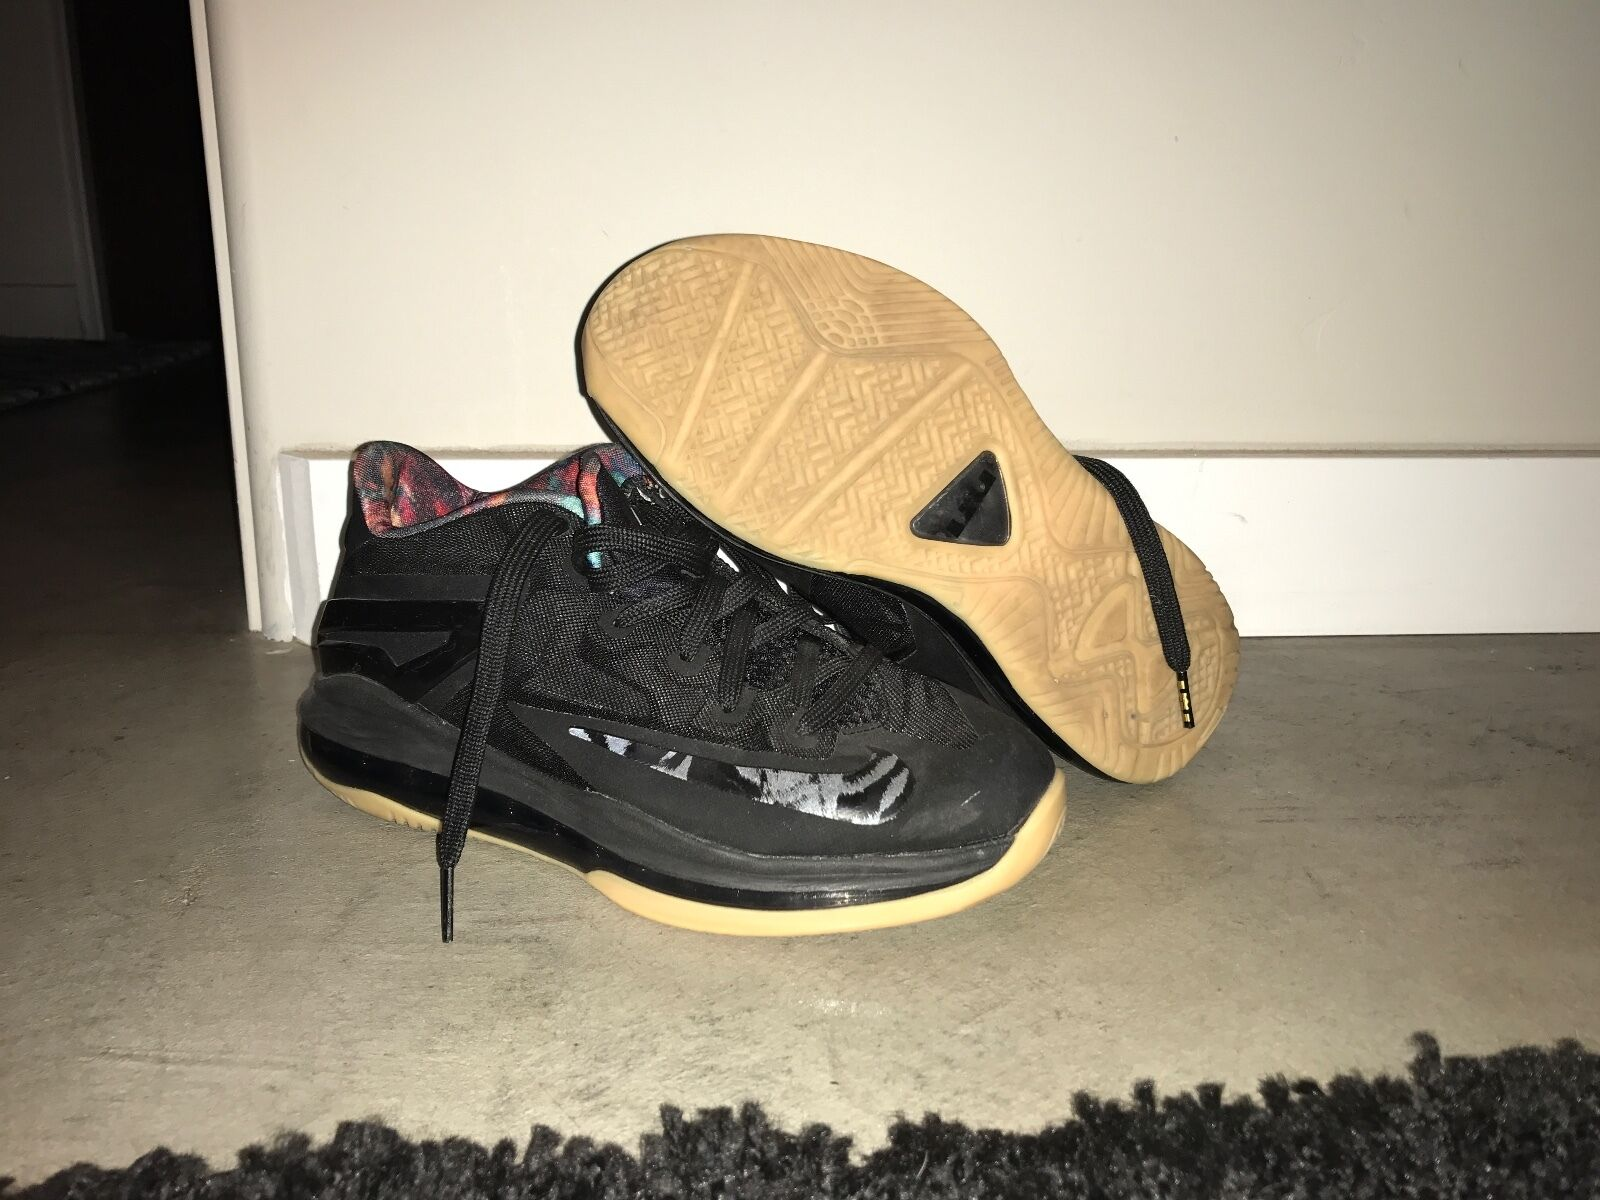 Lebron 11 Low Black Gum 2014 Release. 9/10 Condition